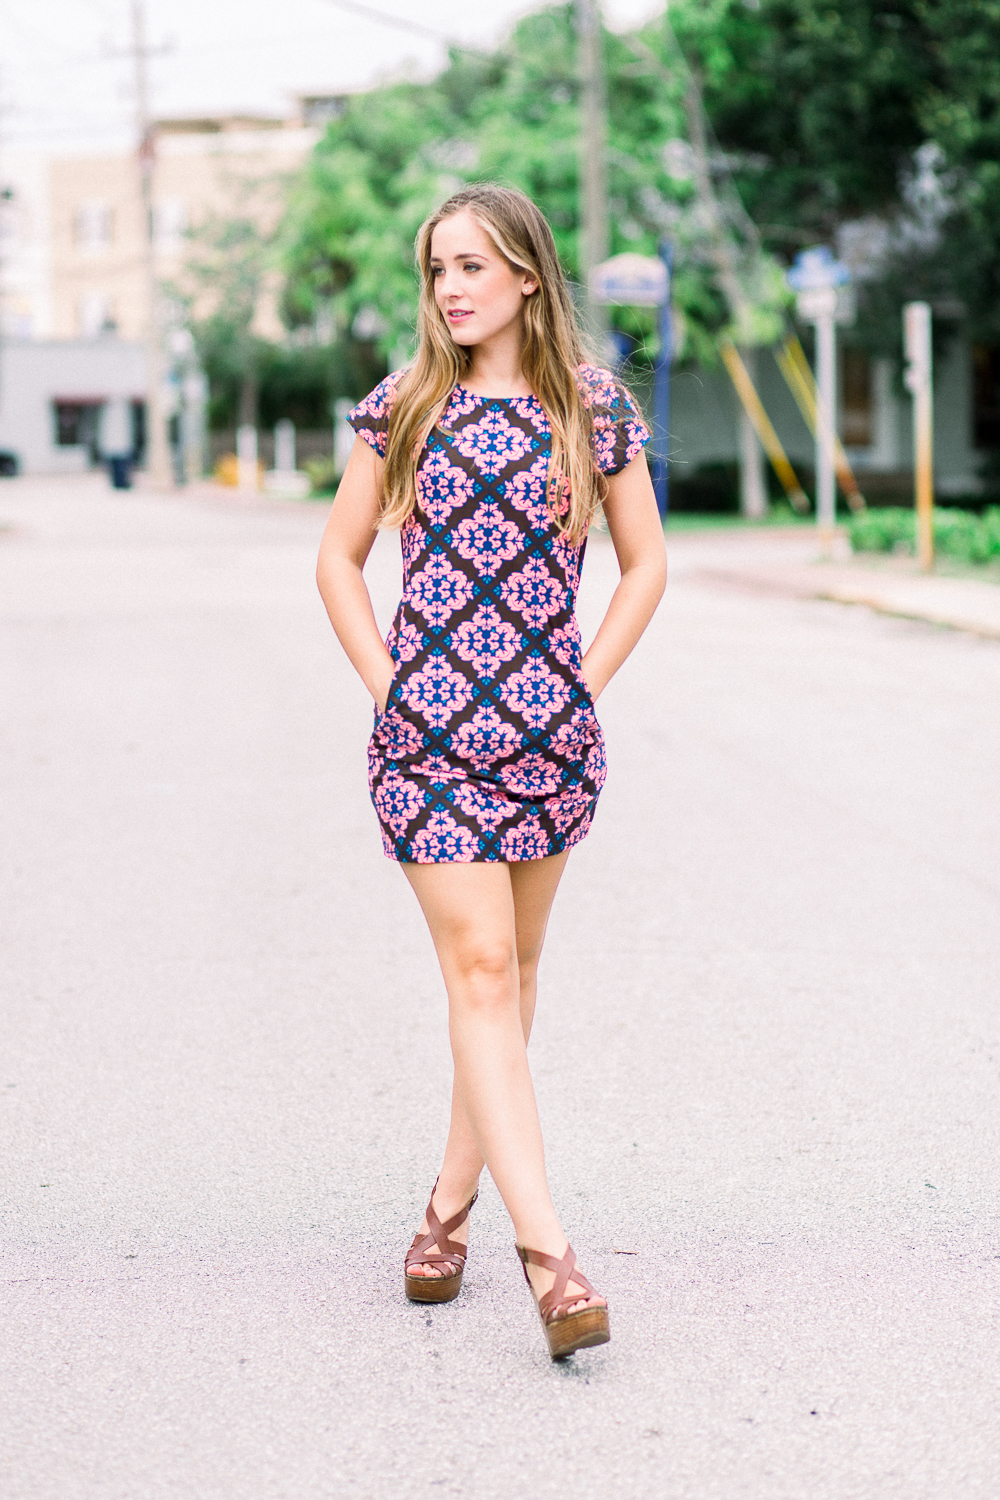 Girl walking in road wearing a patterned dress